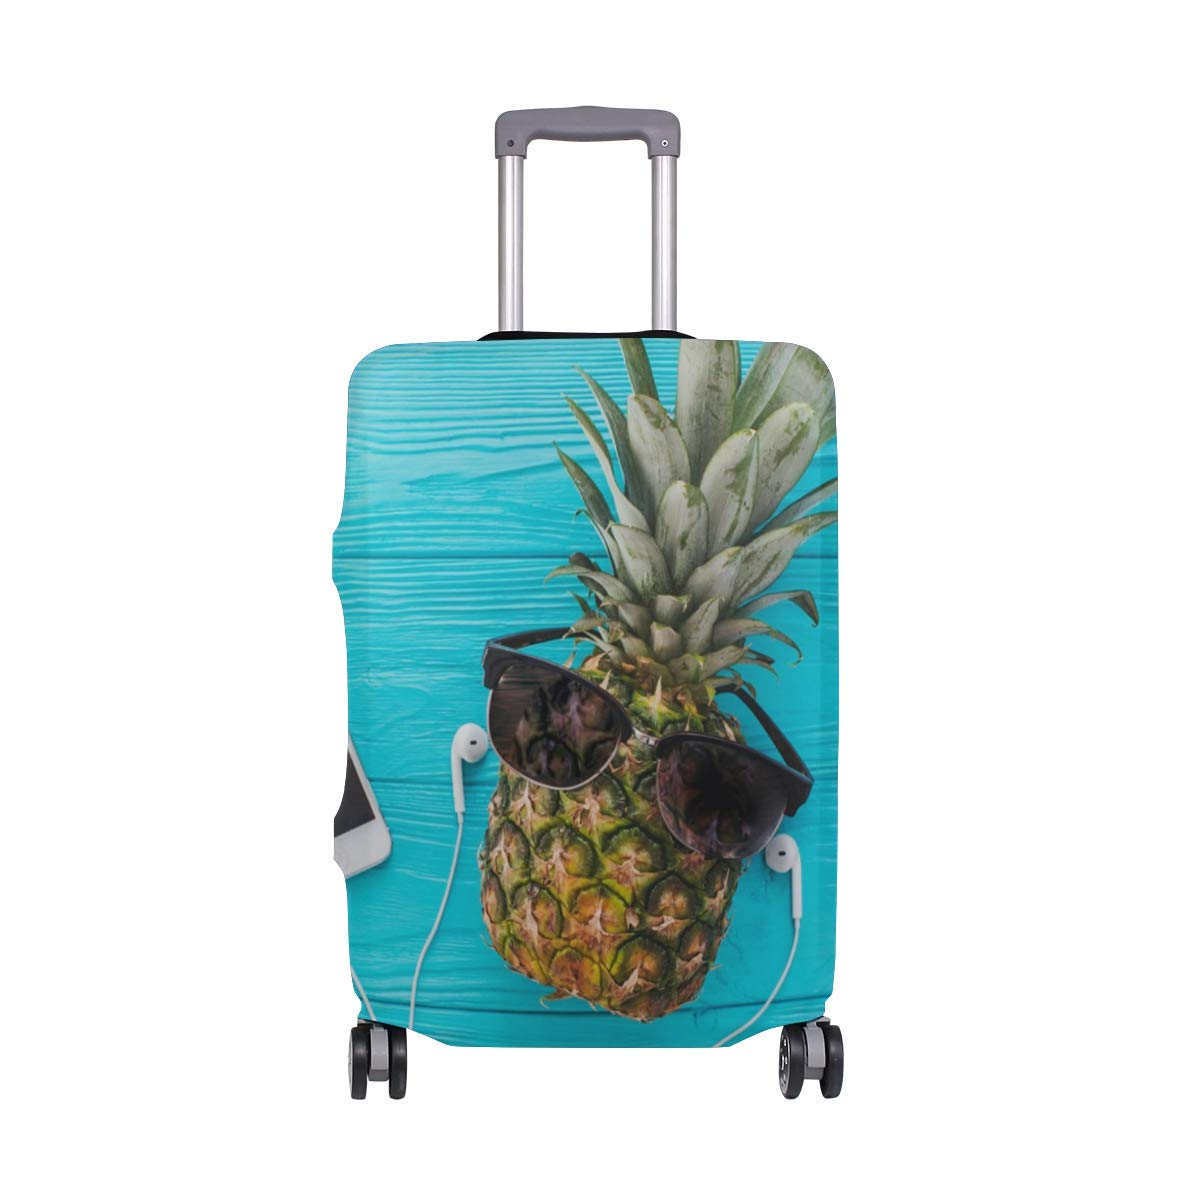 FOLPPLY Funny Pineapple With Glasses Luggage Cover Baggage Suitcase Travel Protector Fit for 18-32 Inch by FOLPPLY